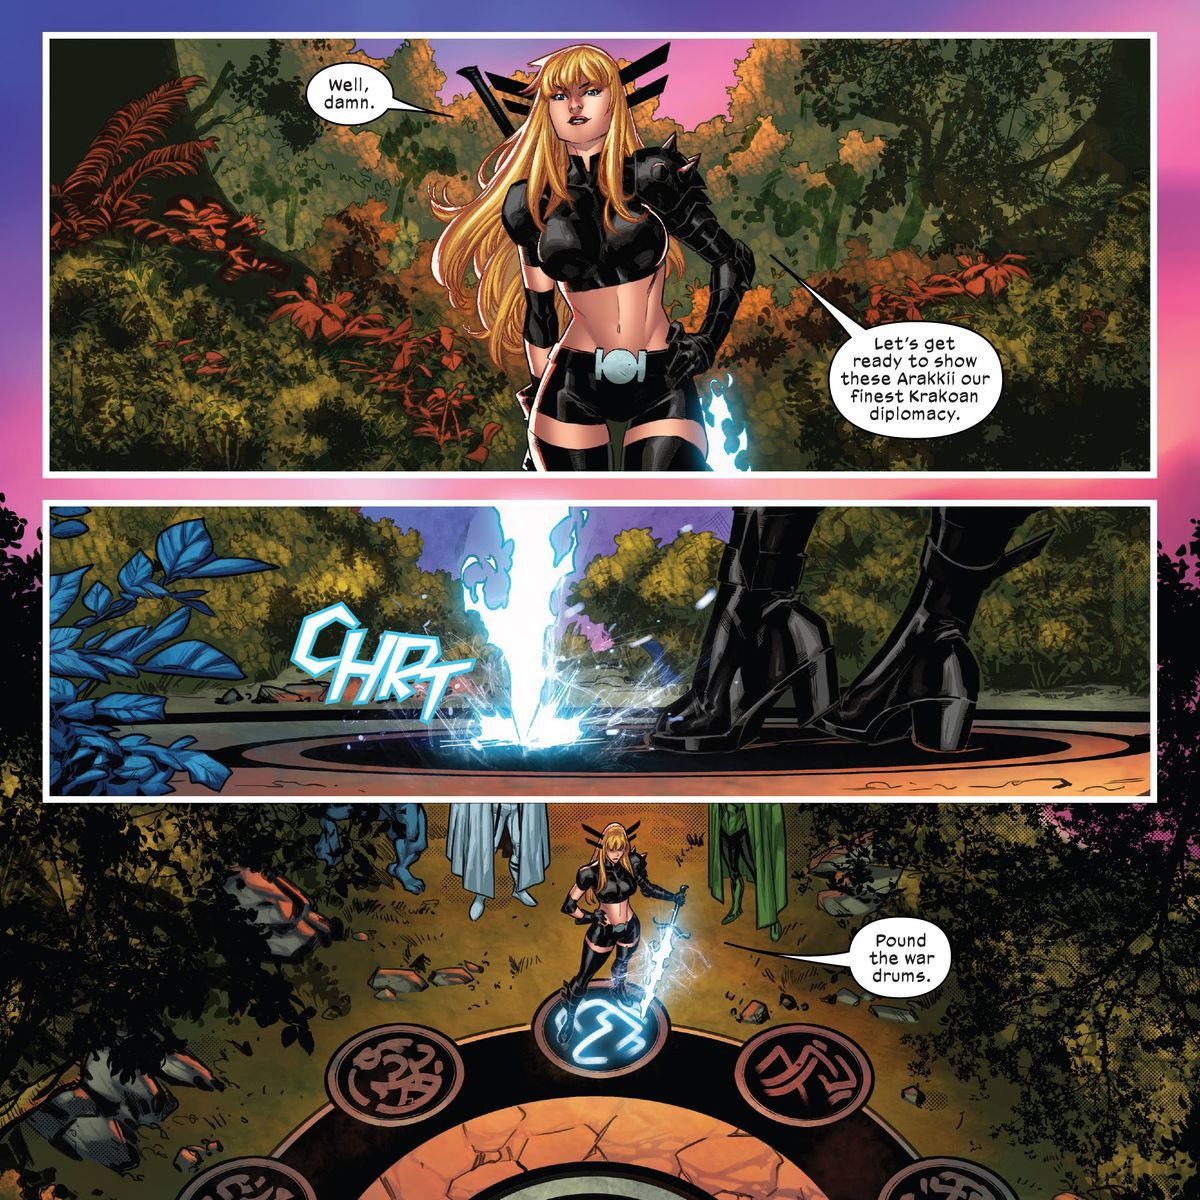 """""""Let's get rady to show these Arakkii our finest Krakoan diplomacy,"""" Magik says as she rests the tip of her soul sword on the sword-bearers' pedastal in X-Factor #4, Marvel Comics (2020). """"Pound the war drums."""""""